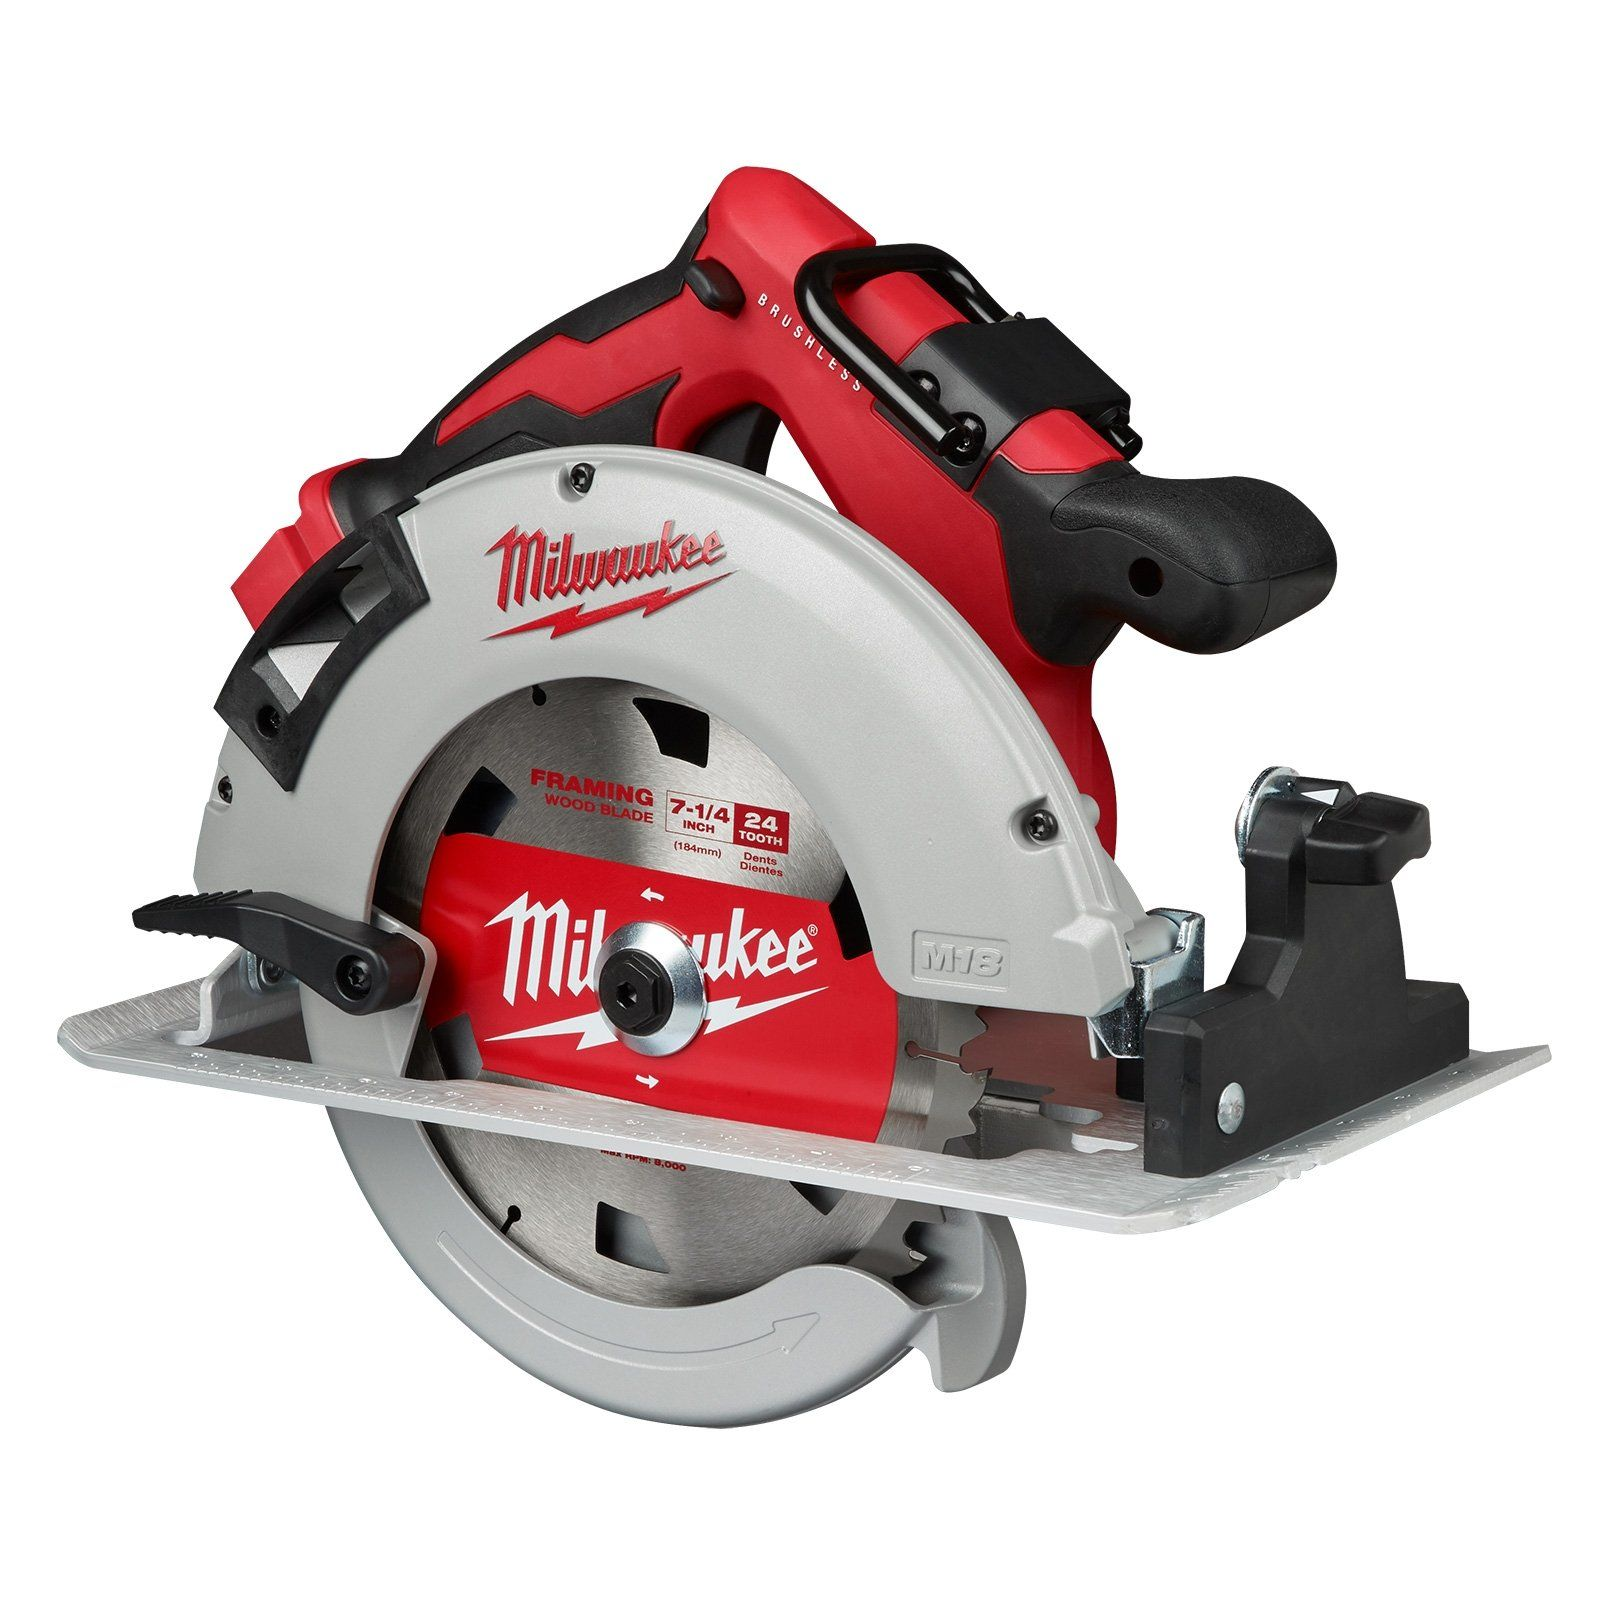 Milwaukee 18V Brushless 184mm Circular Saw (tool only